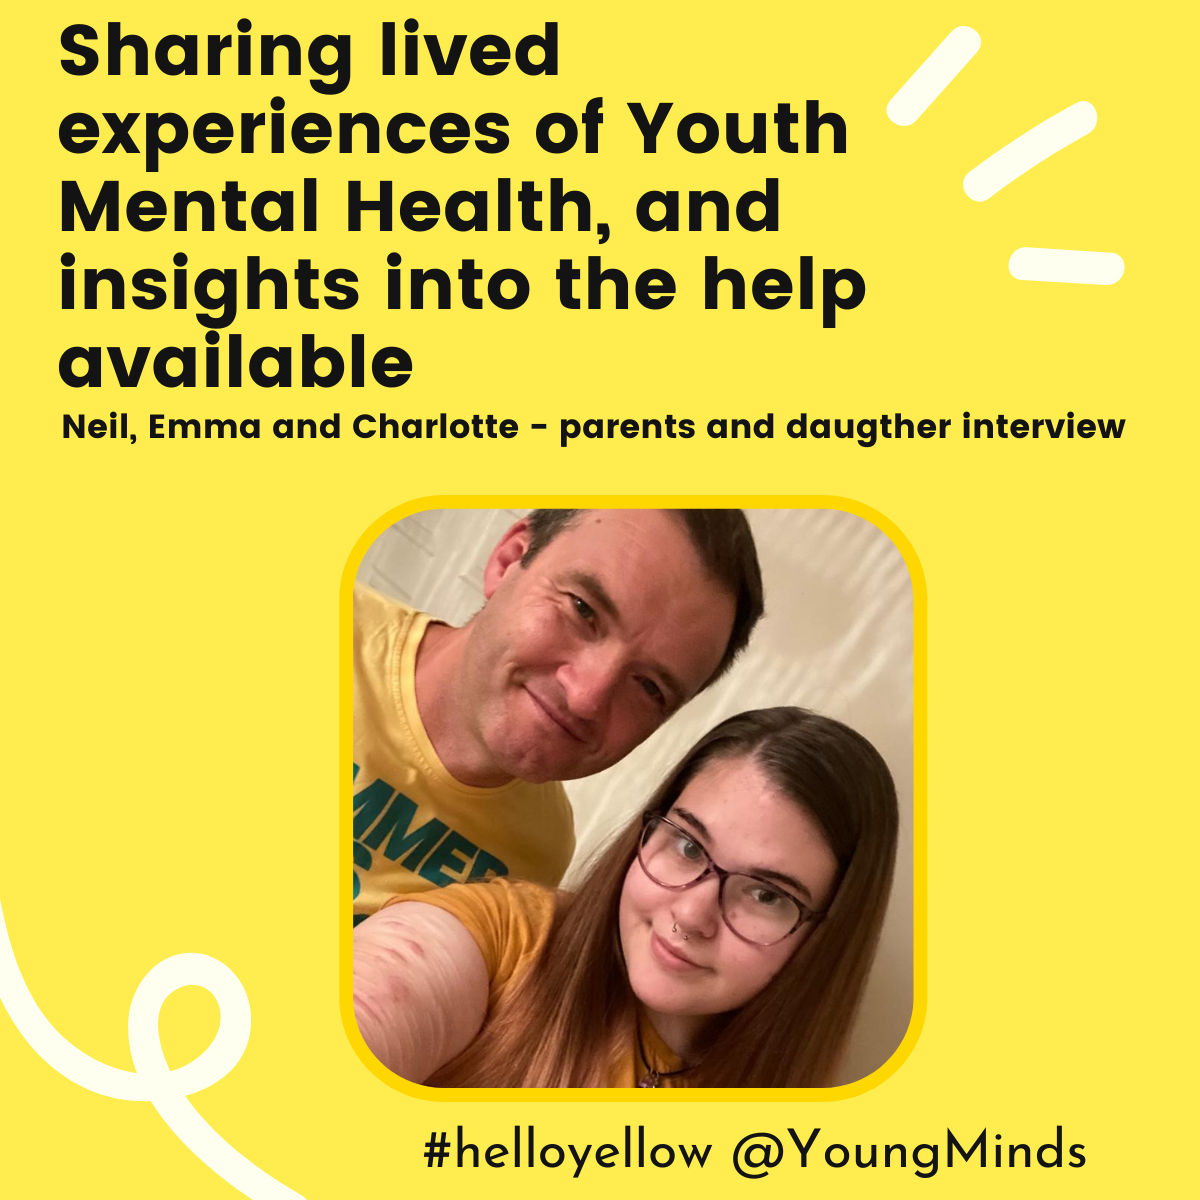 #helloyellow for YoungMinds interview